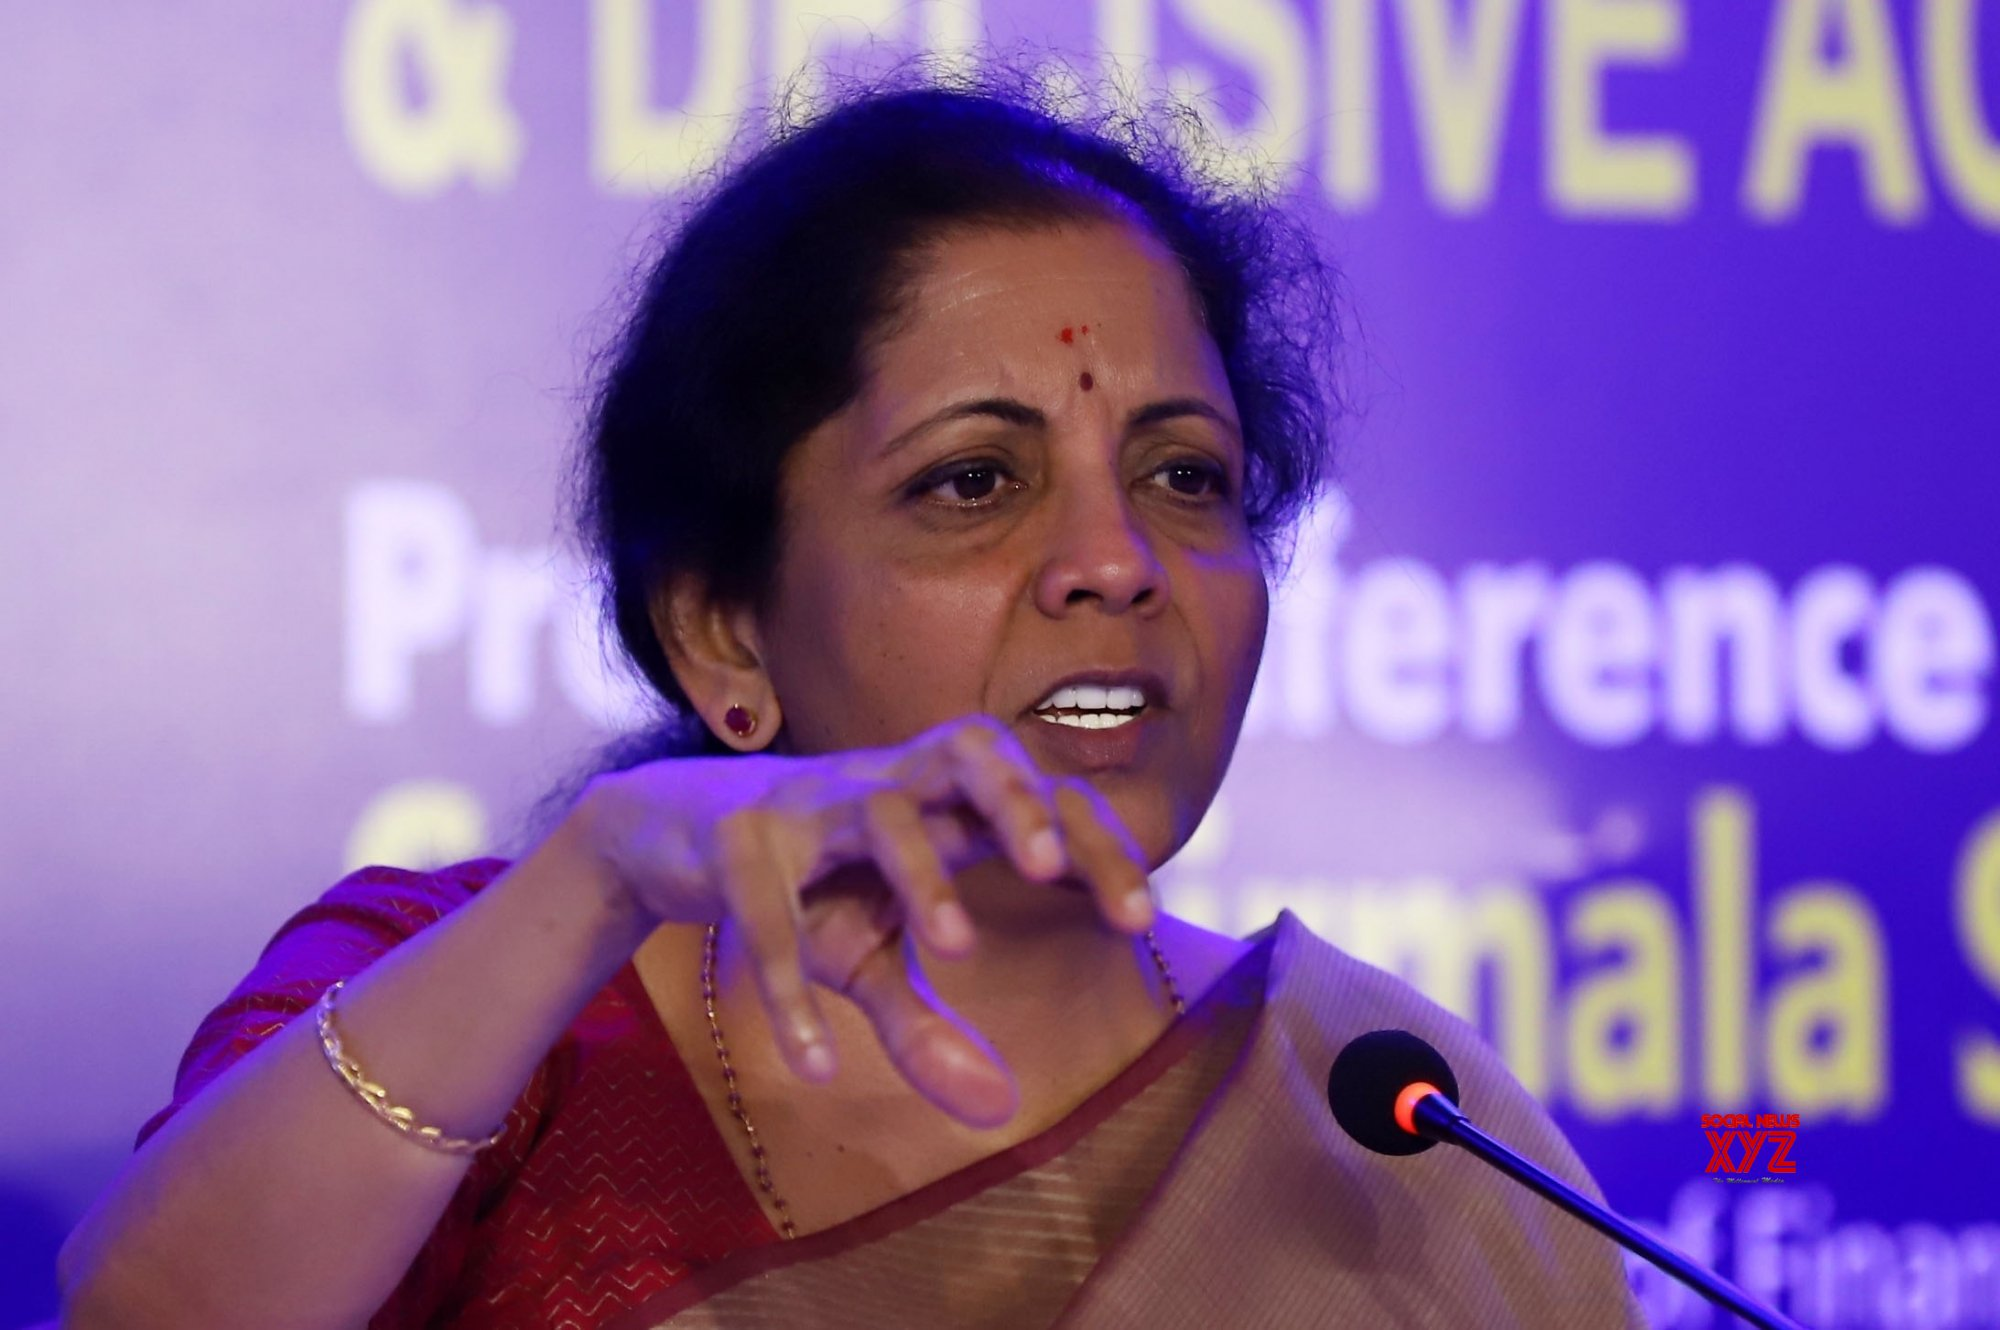 Reports claim Pak to submit dossier citing Rahul's remark, Nirmala fumes